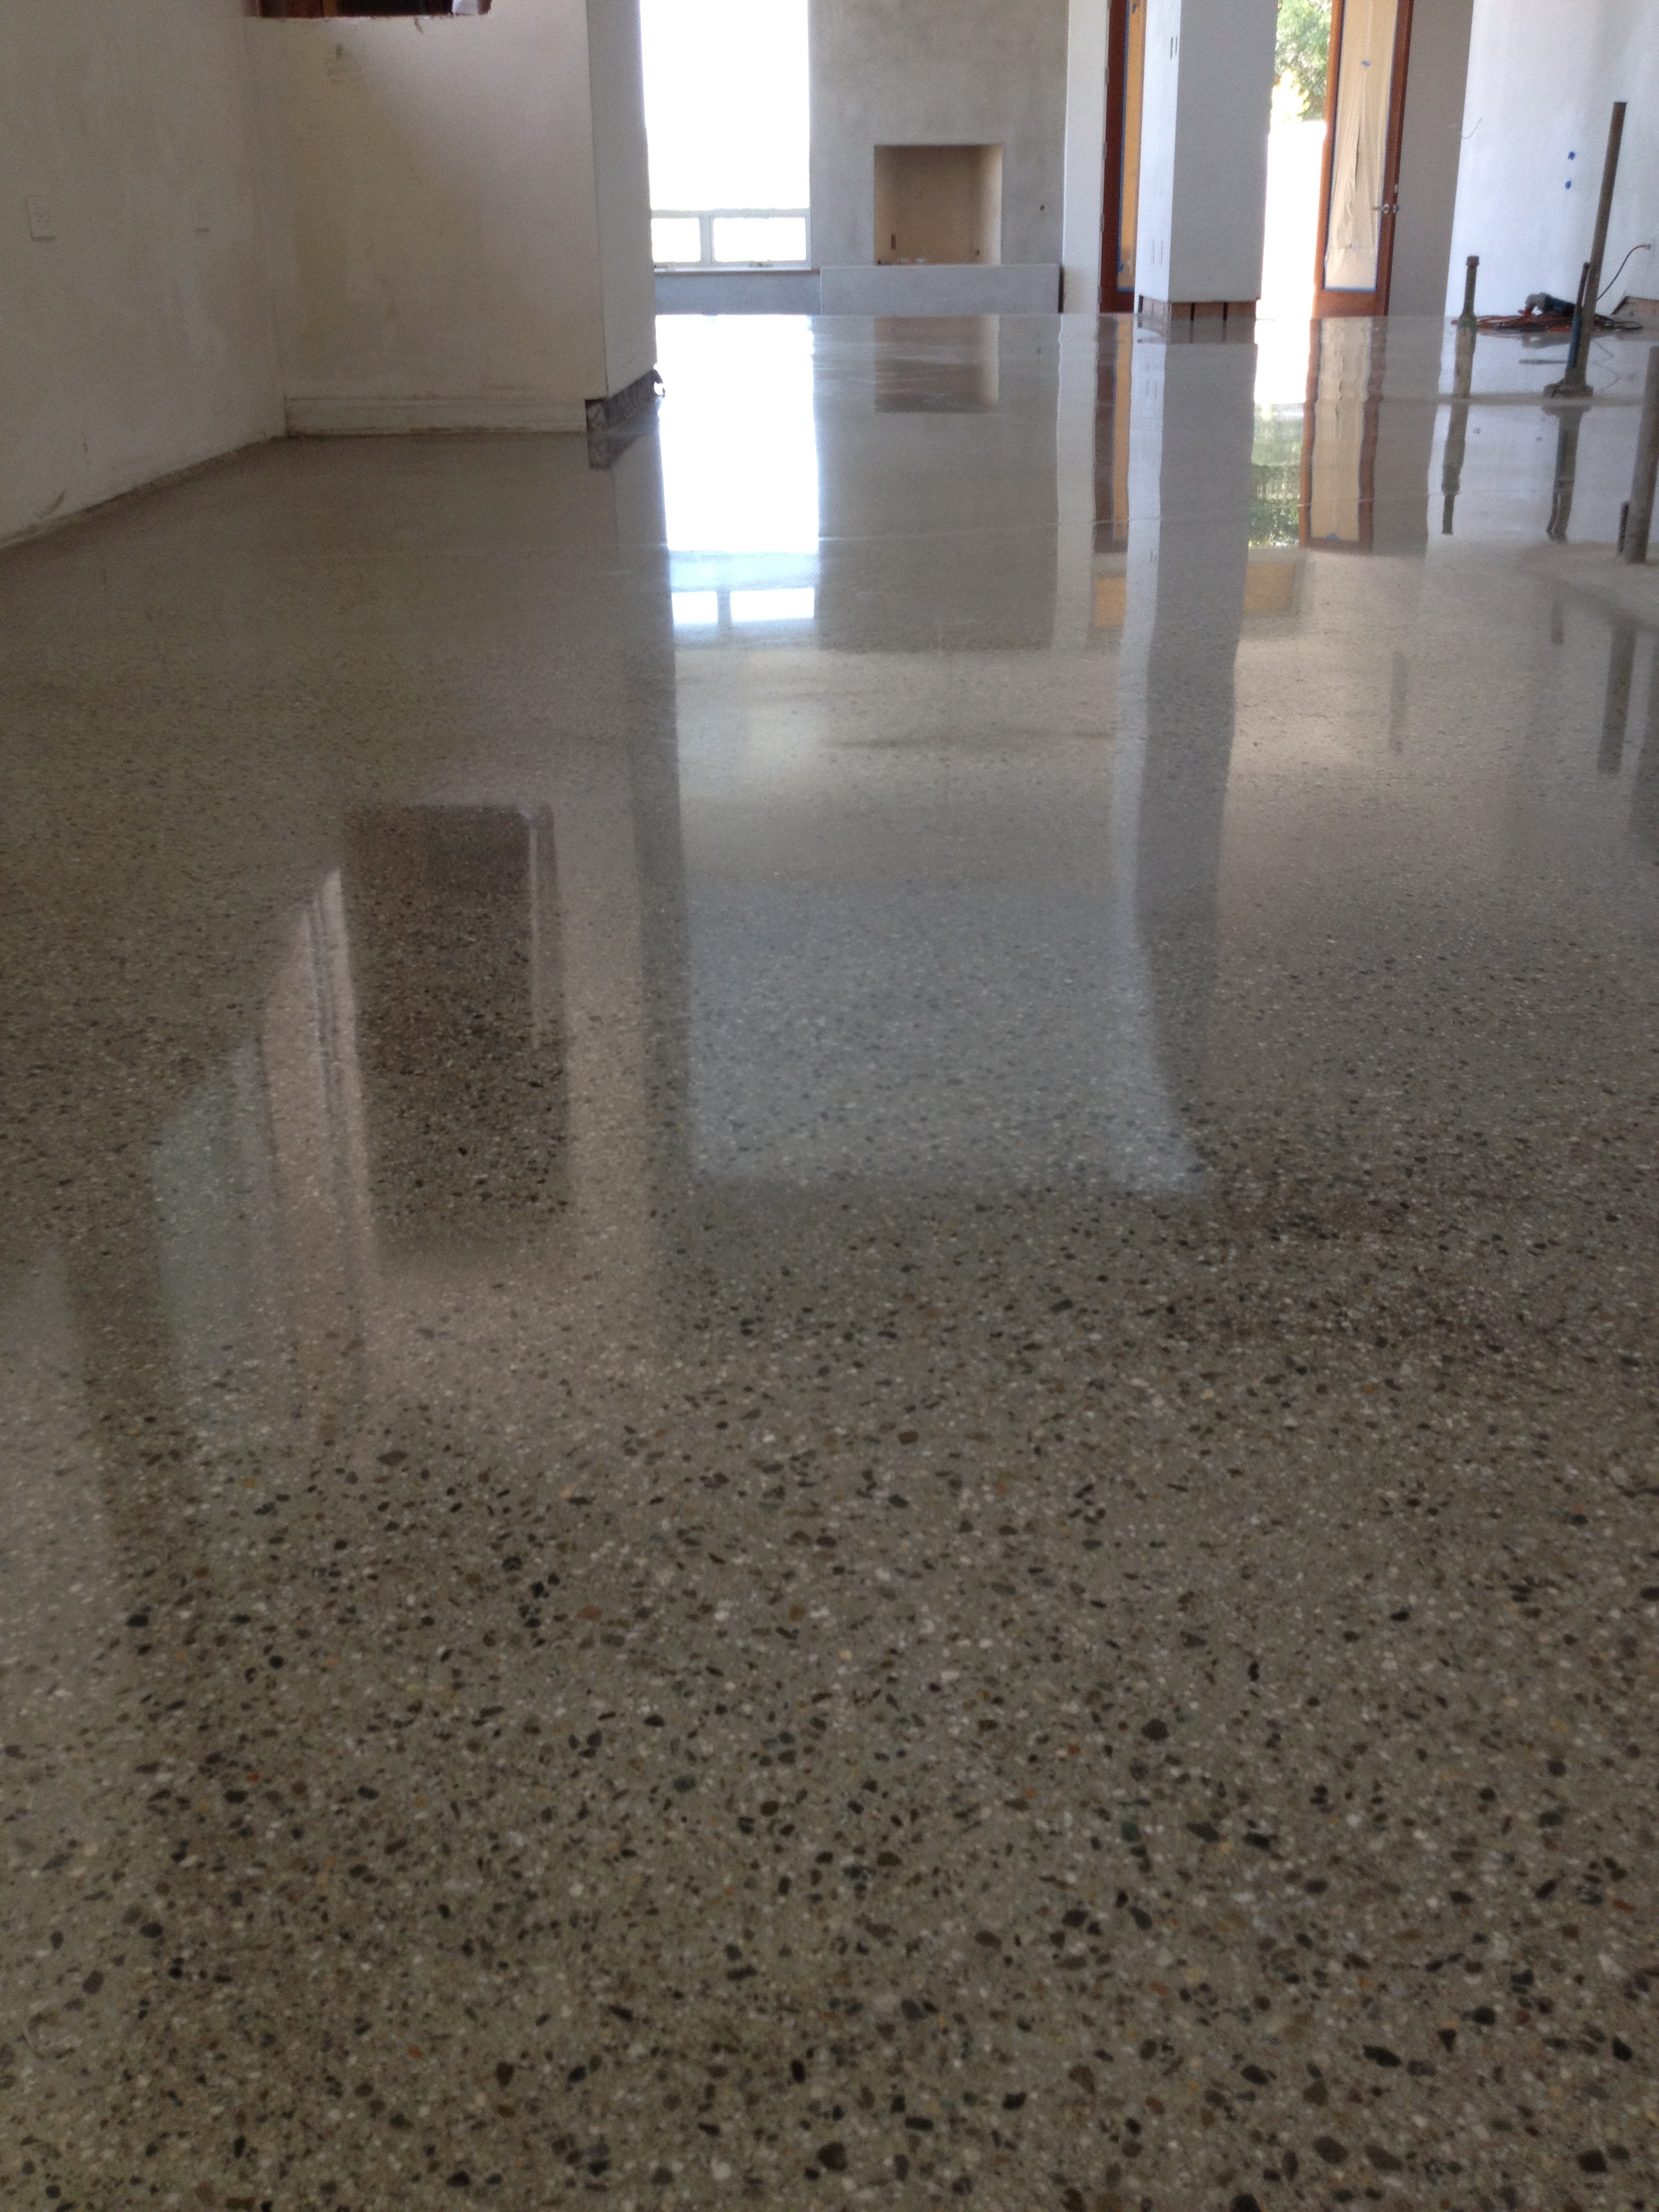 Polished concrete advertisements